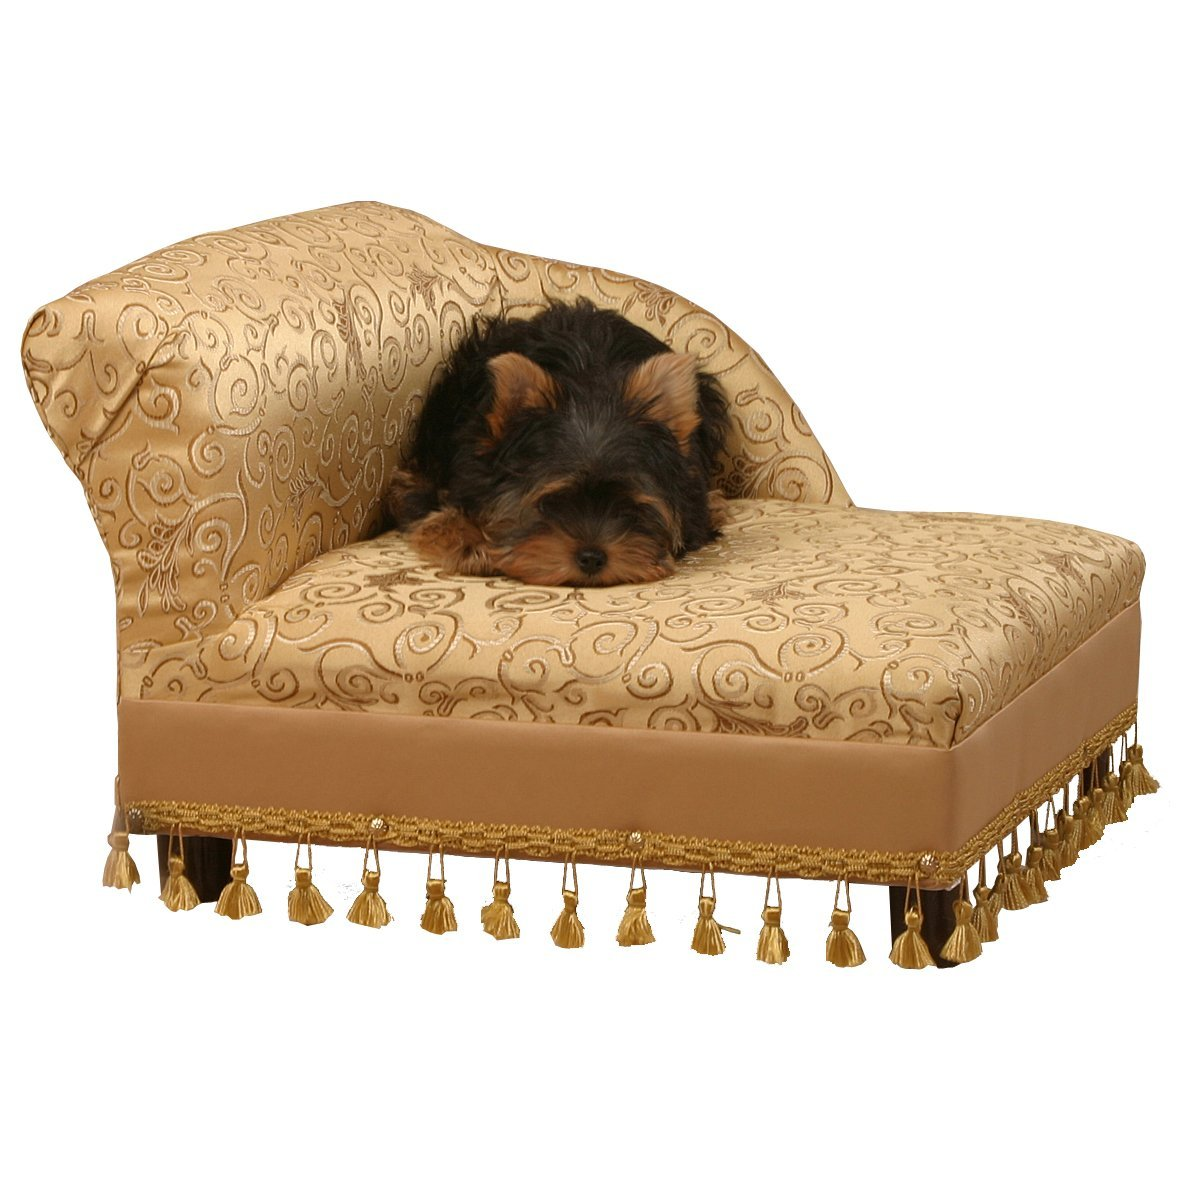 Luxury & Designer Dog Beds For Small And Large Dogs